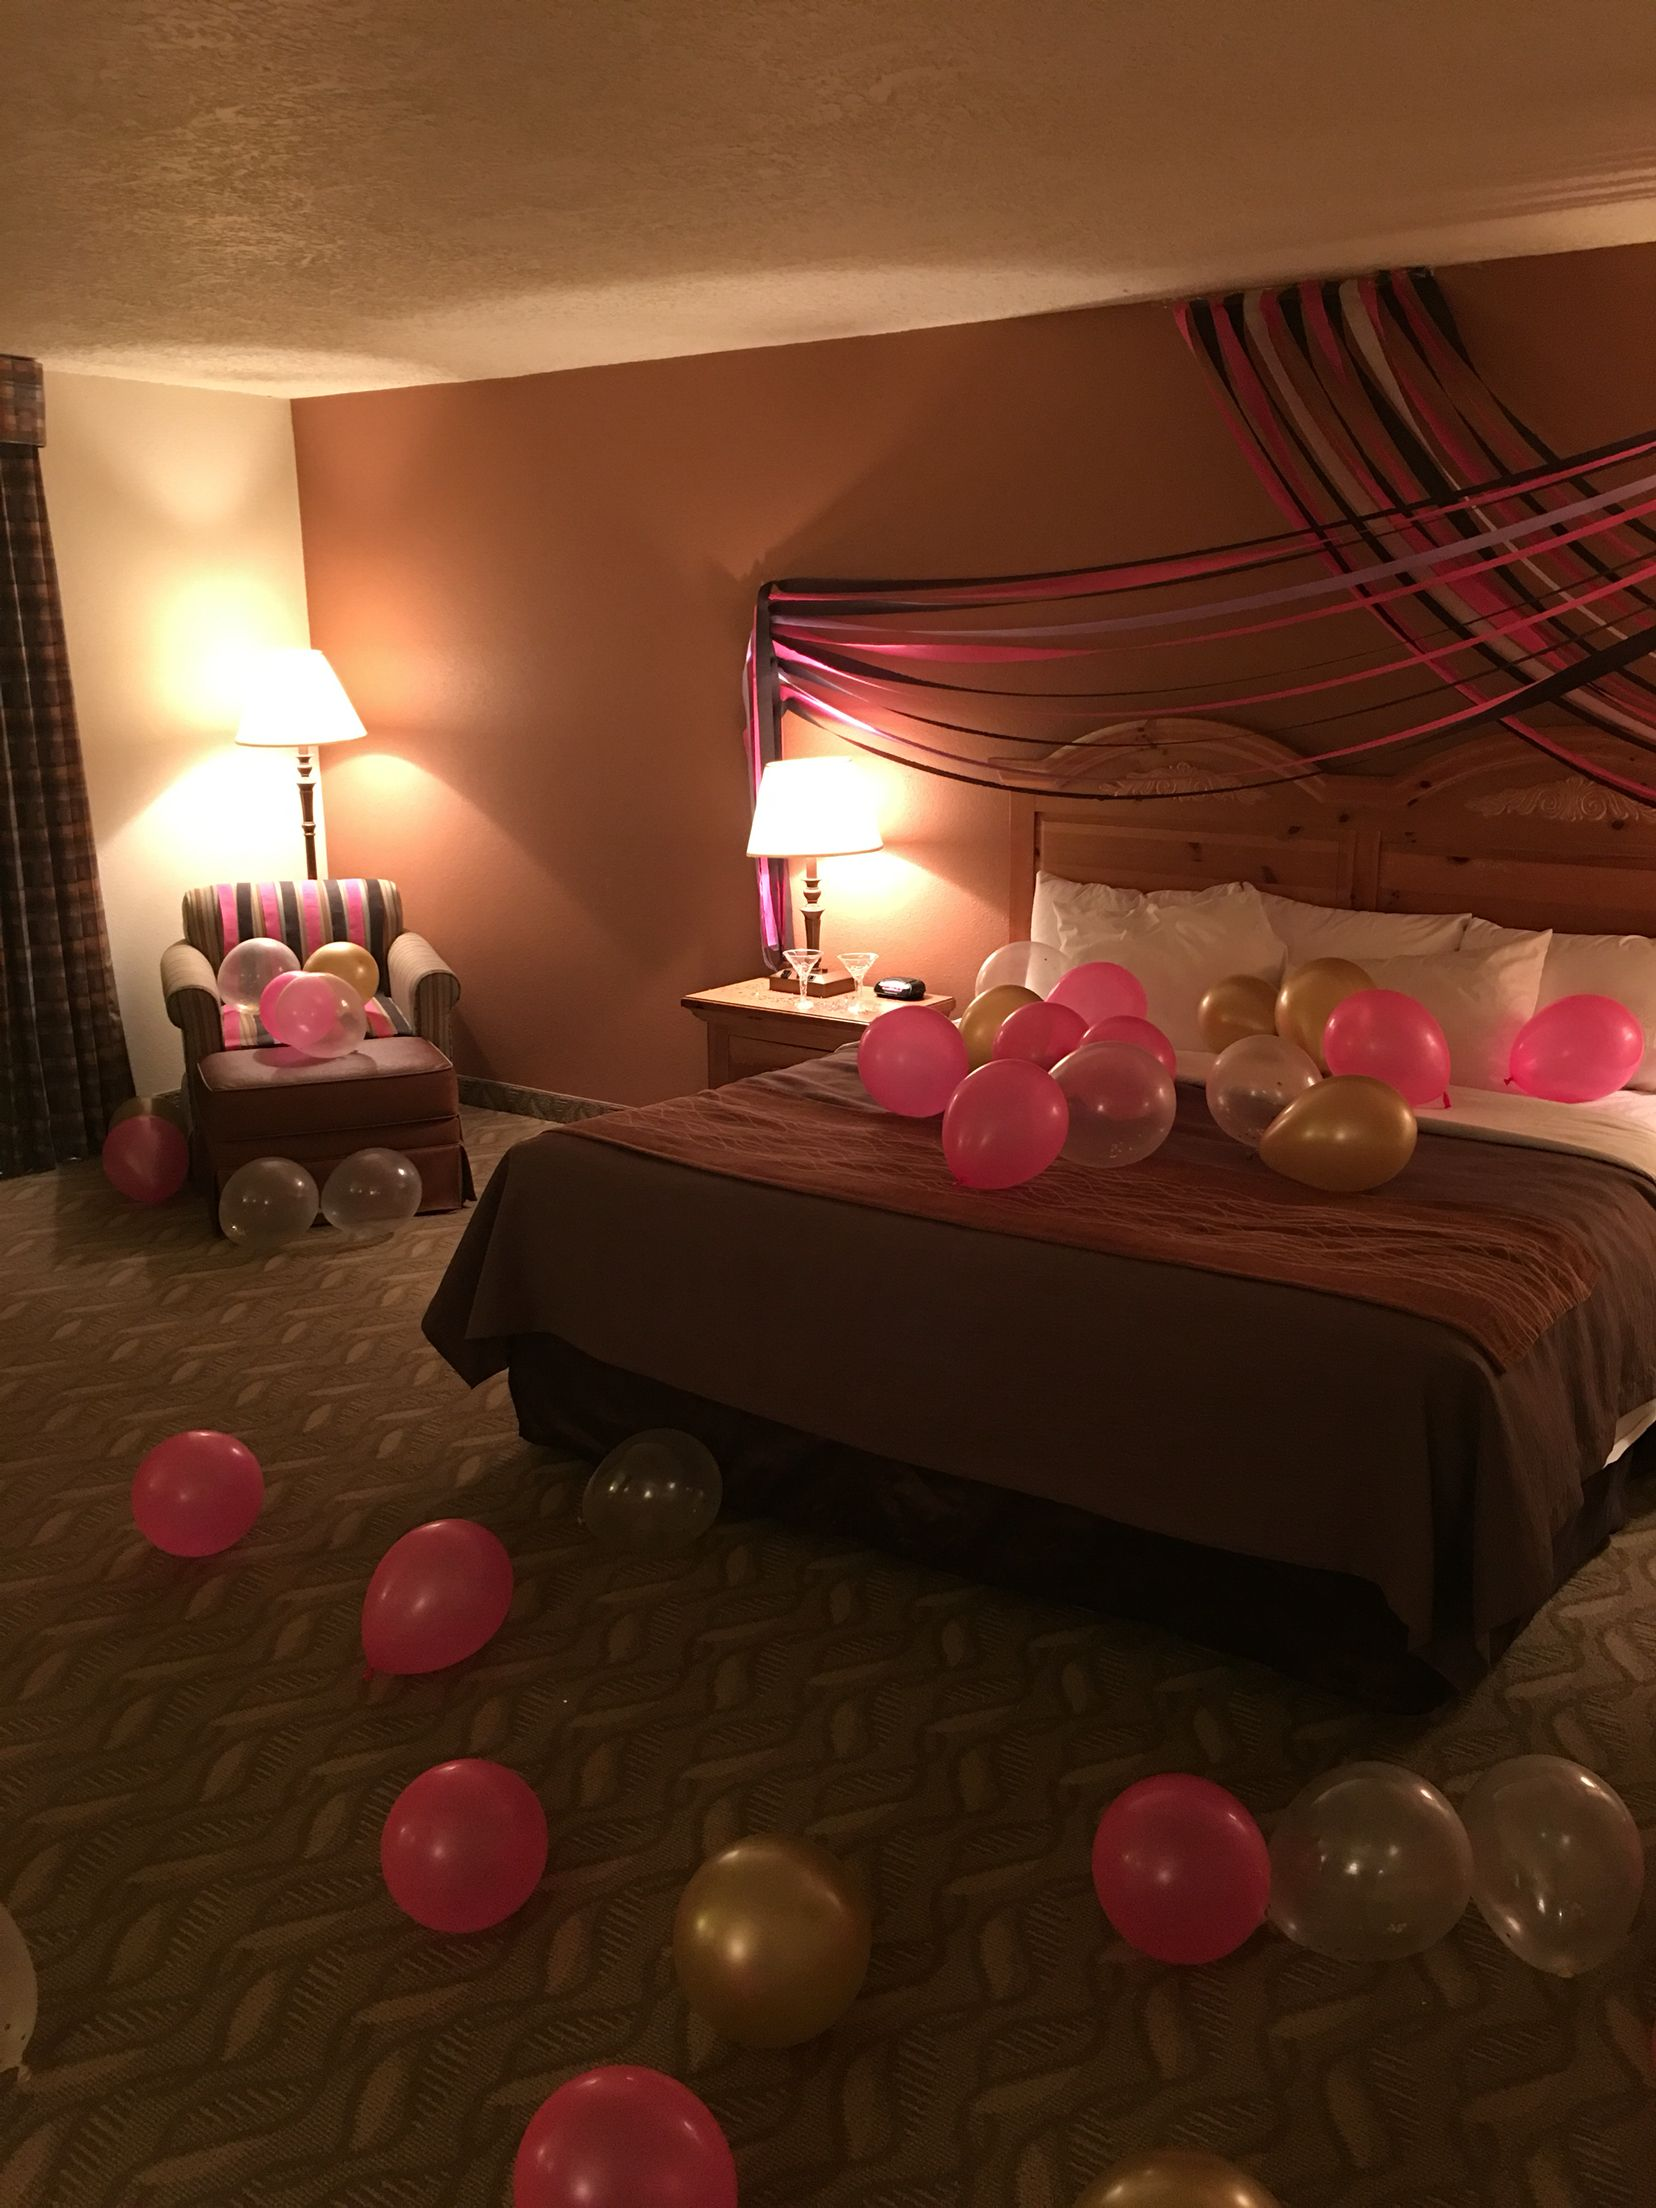 How to decorate hotel room for girlfriend birthday